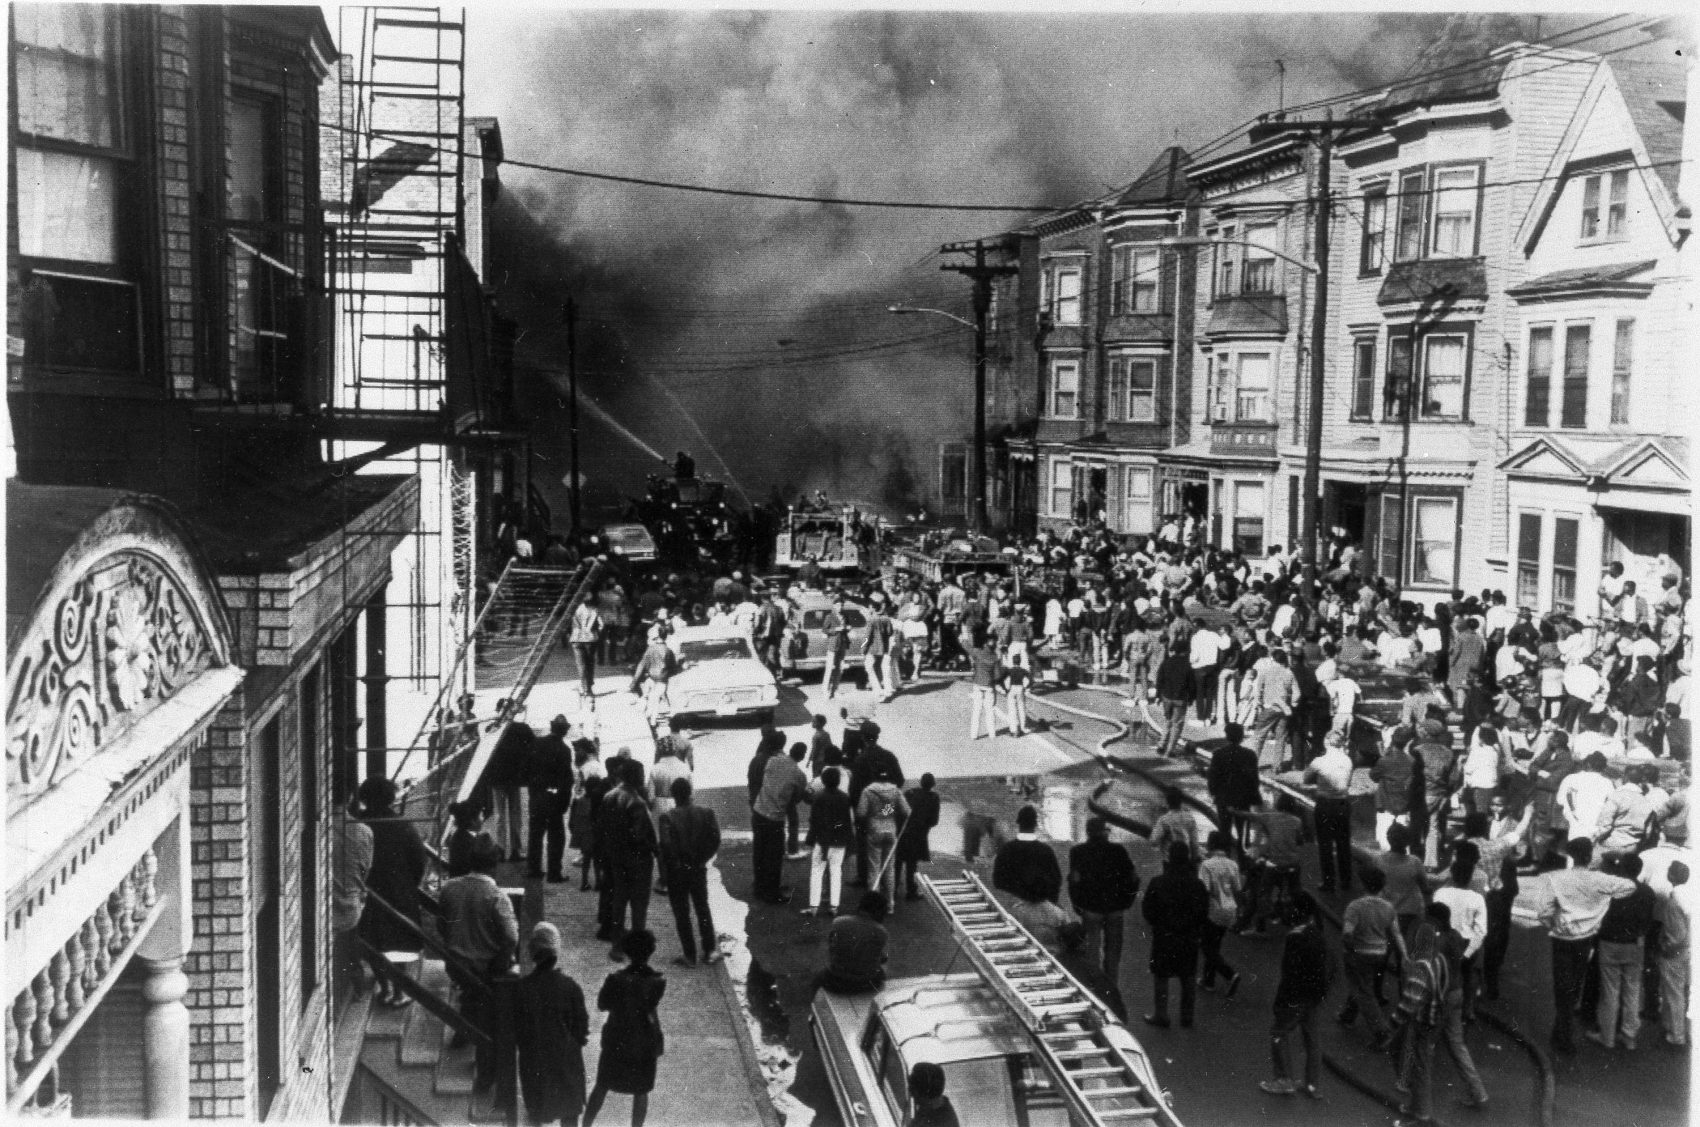 A Major fire in Newark, N.J., drew a large crowd of onlookers watching firemen pour water onto the burning building, April 6, 1968. City officials reported some firebomb incidents in response to the assassination of Martin Luther King Jr. in Memphis, Tenn. (AP Photo)